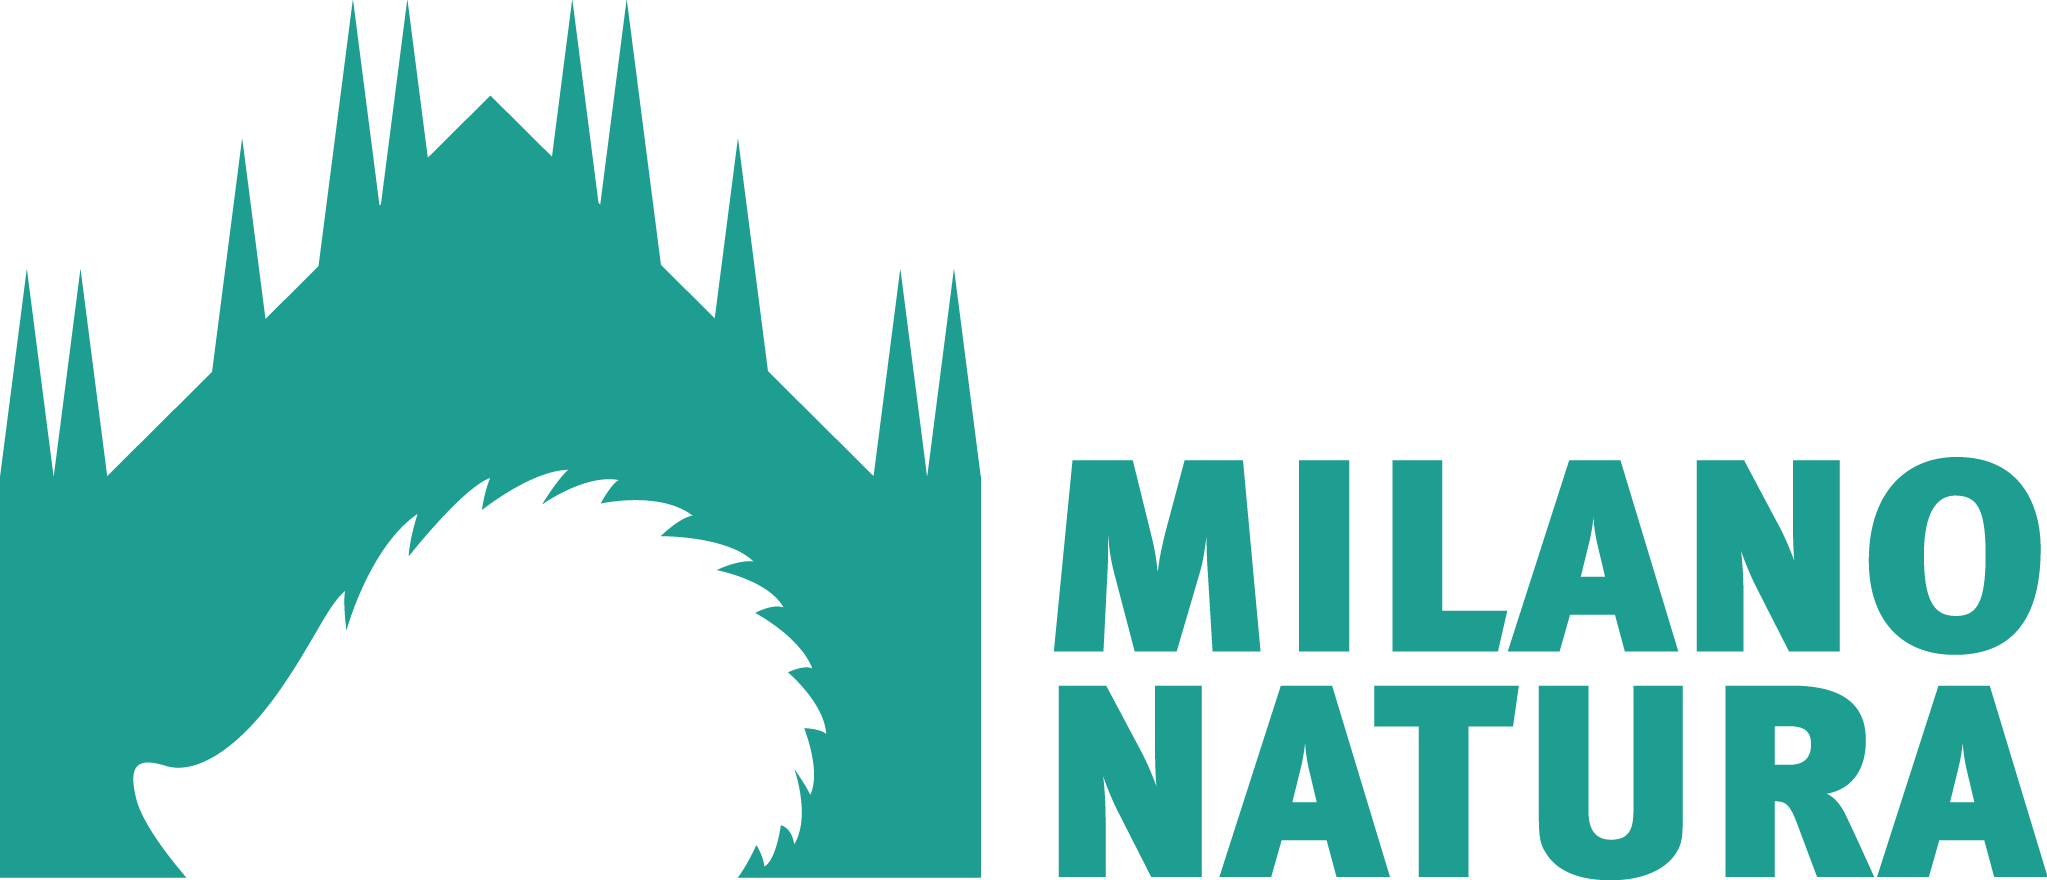 milanonatura.it - Milano Natura